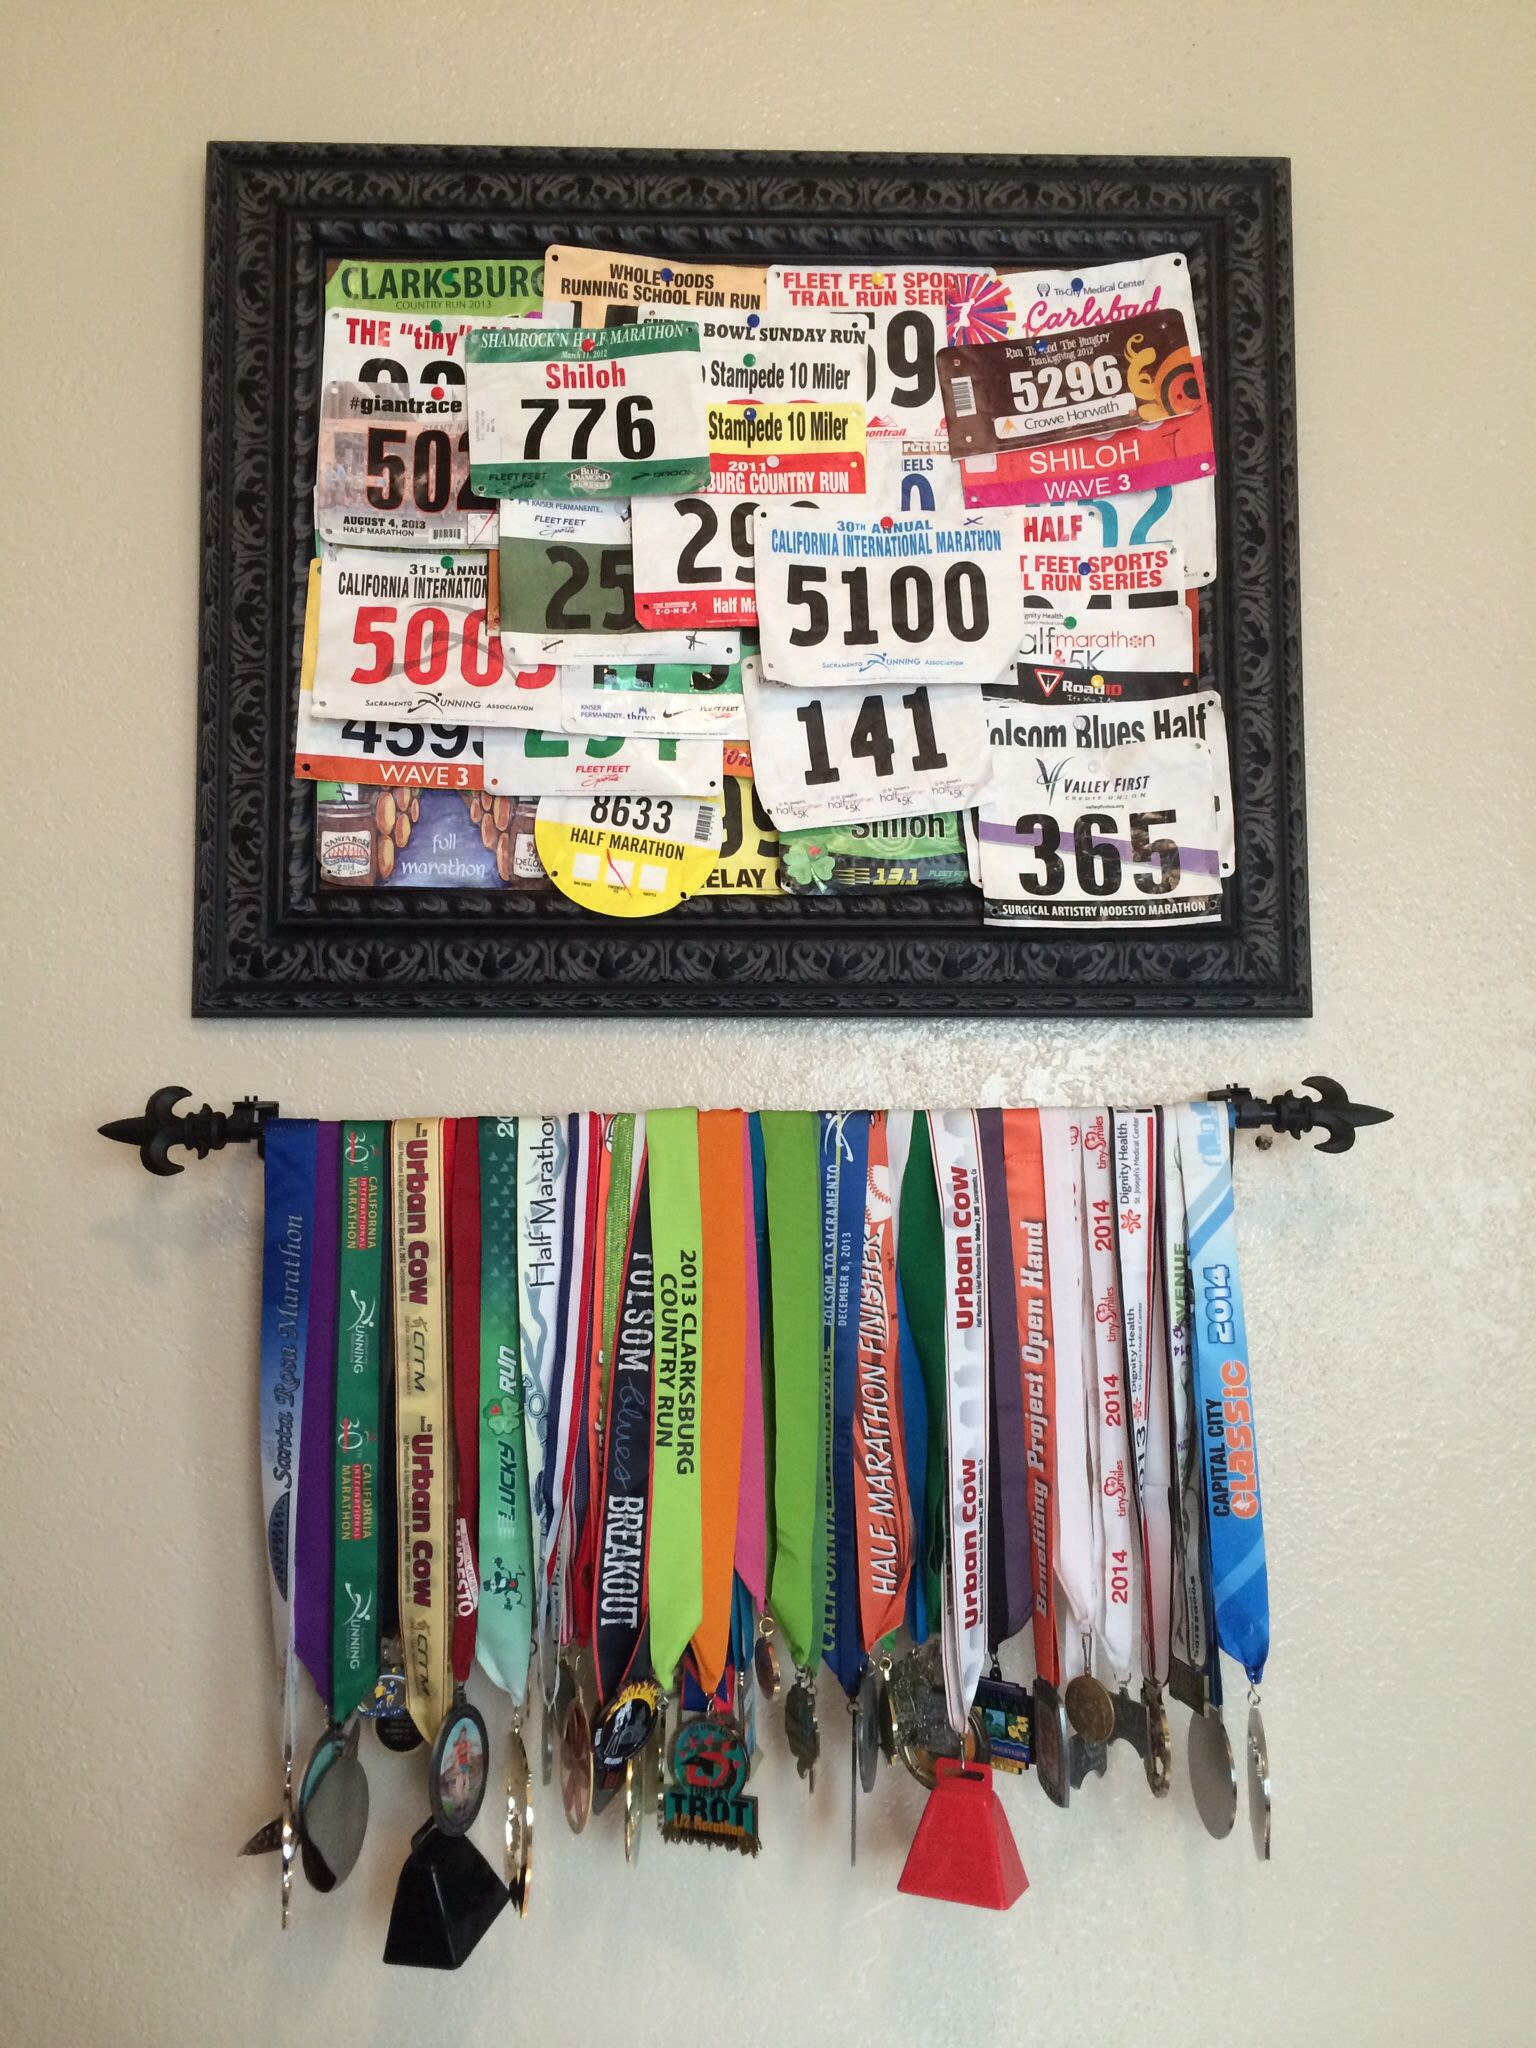 Race Bib And Medal Display Use A Curtain Rod For The Medals And A Framed Cork Board For The